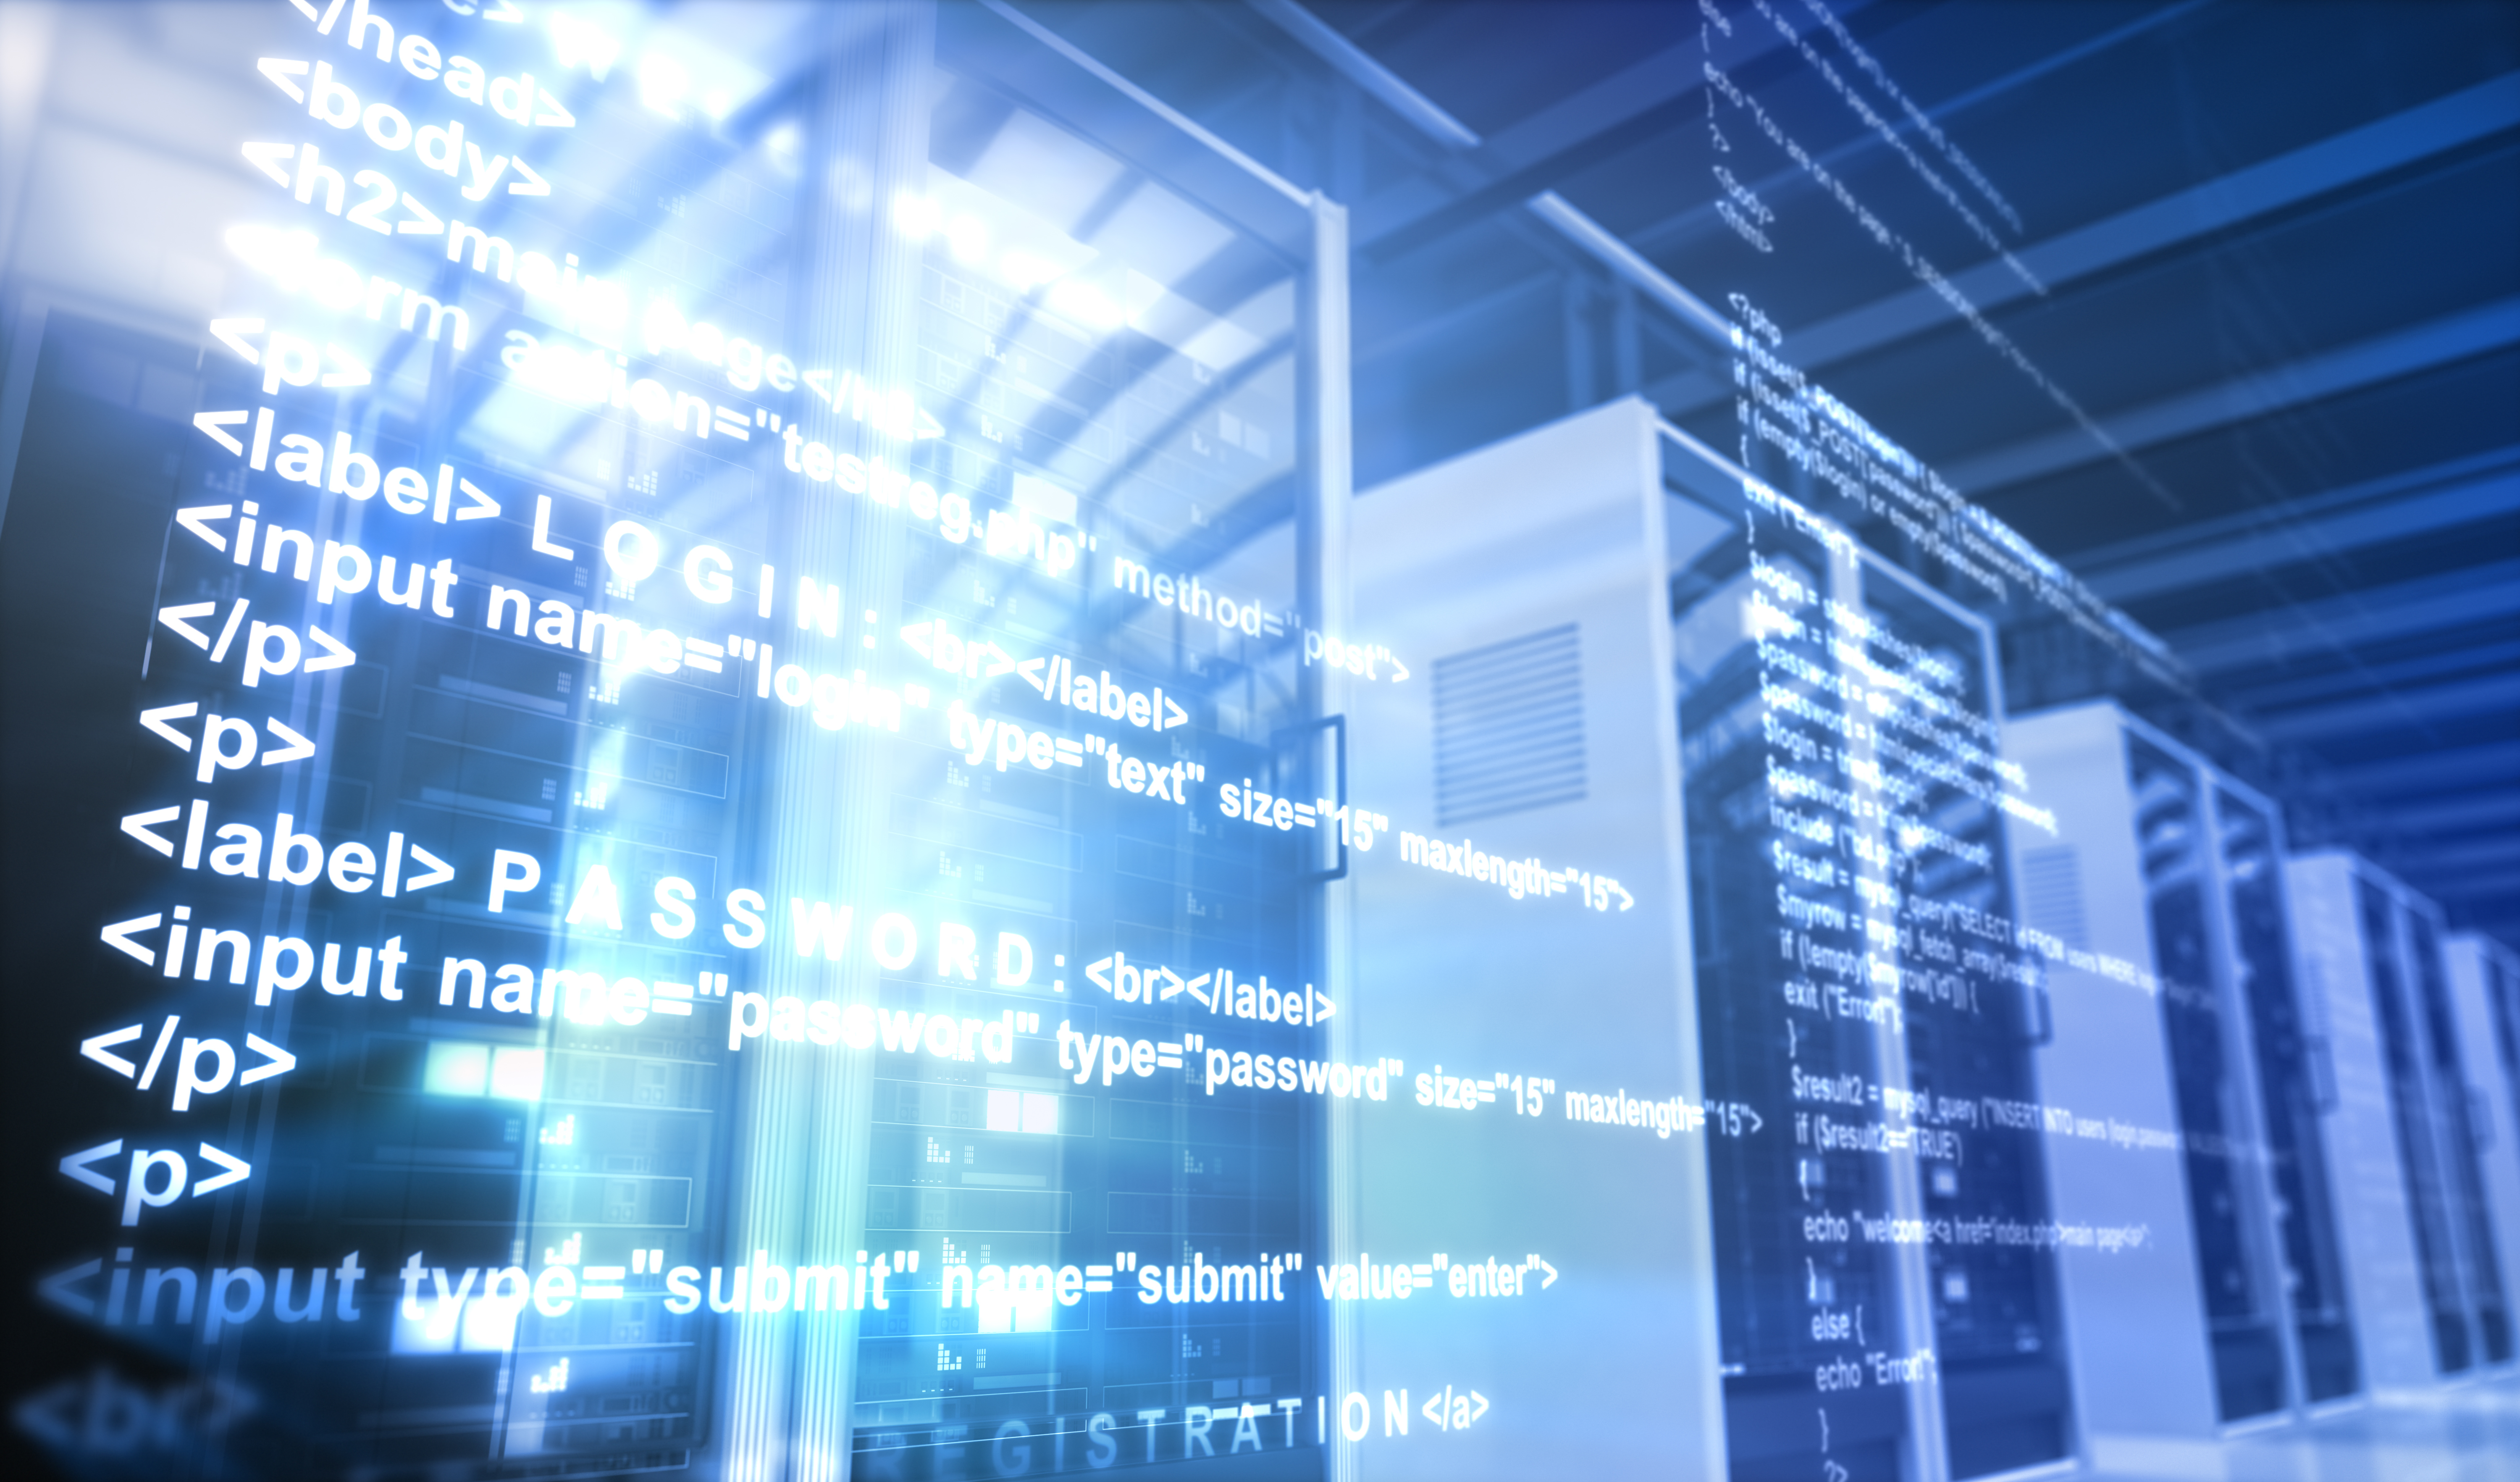 analytical versus operational environments